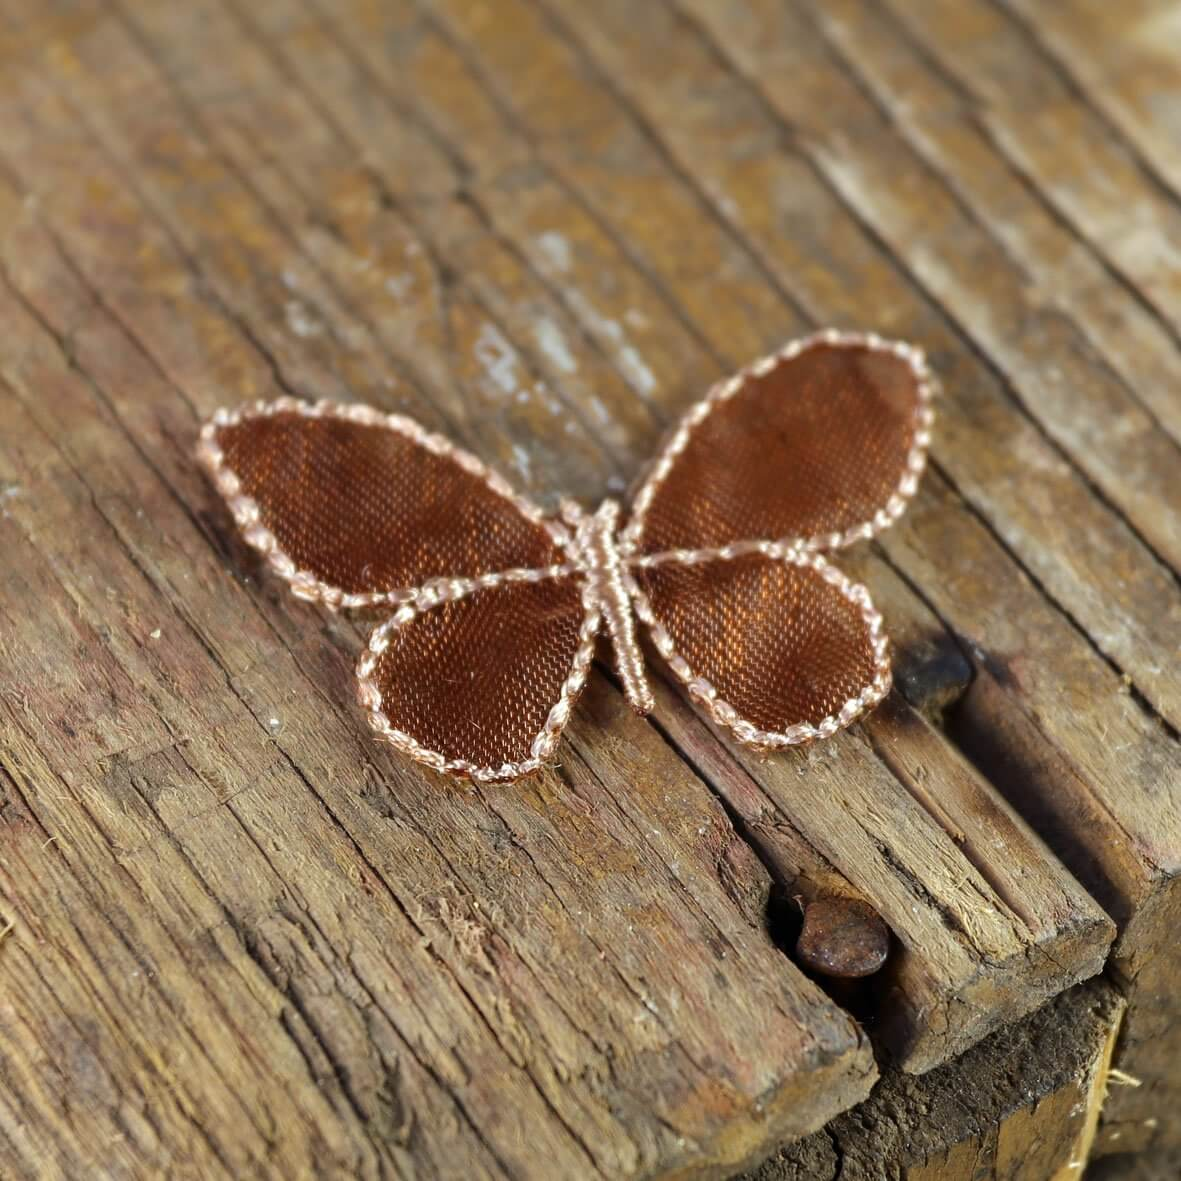 Small Coffee Sheer Butterflies